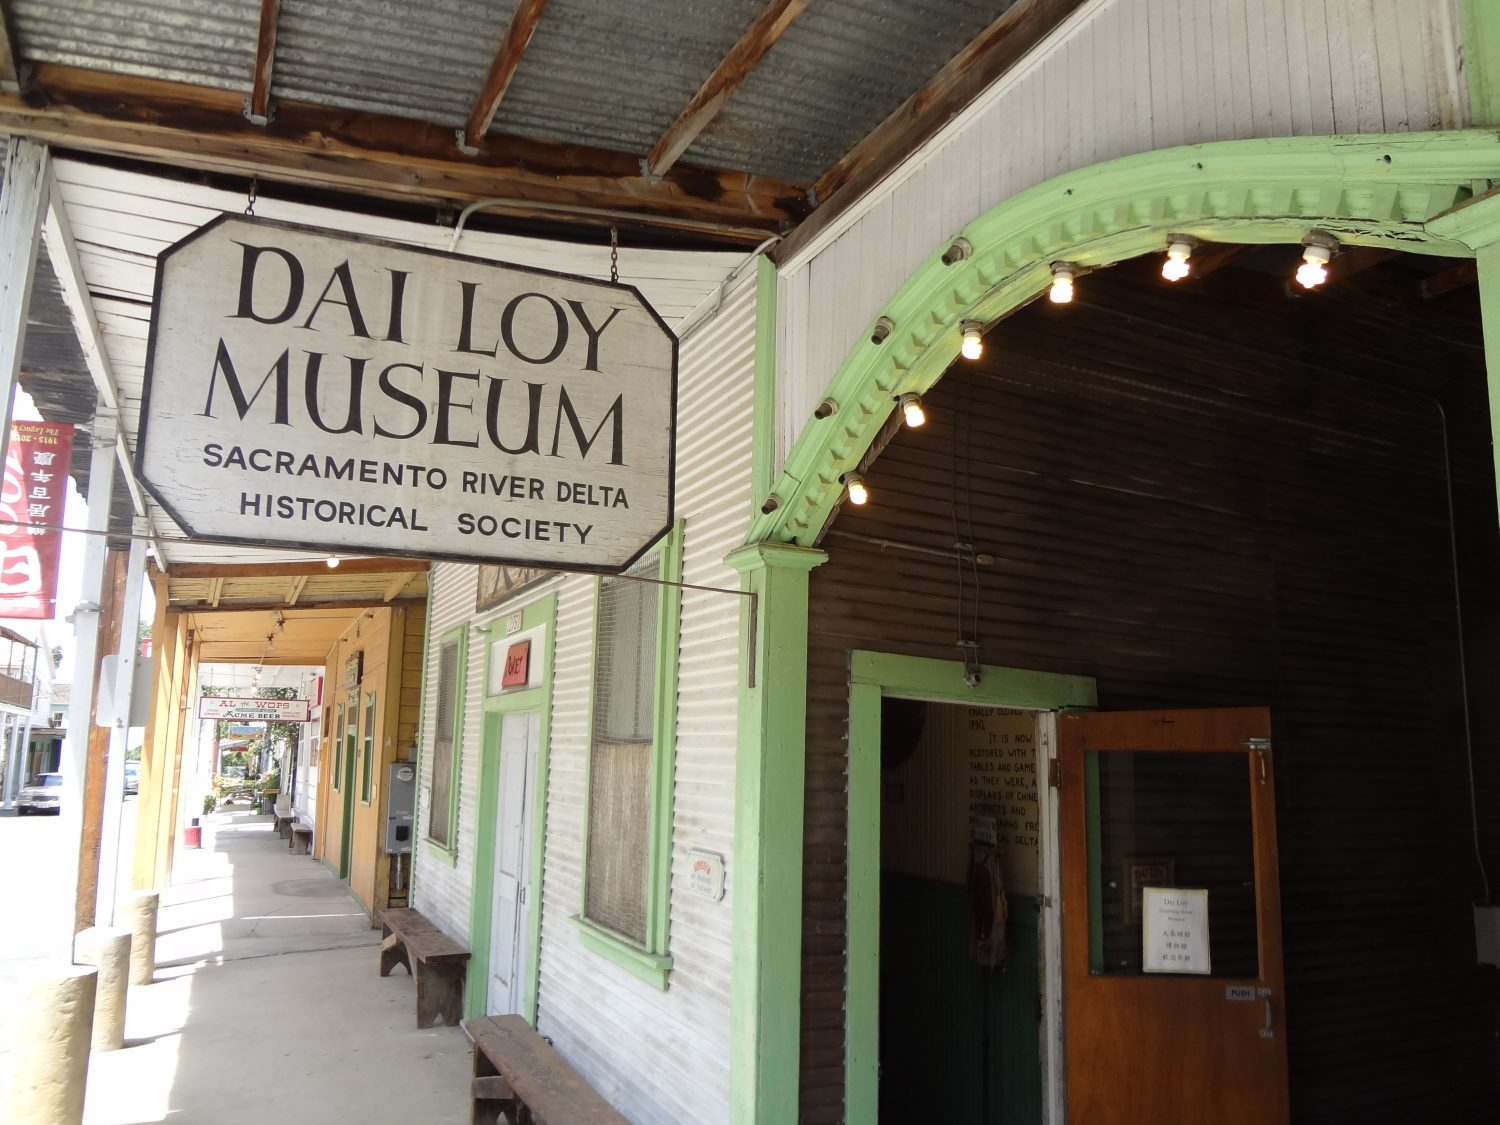 Dai Loy Museum sign